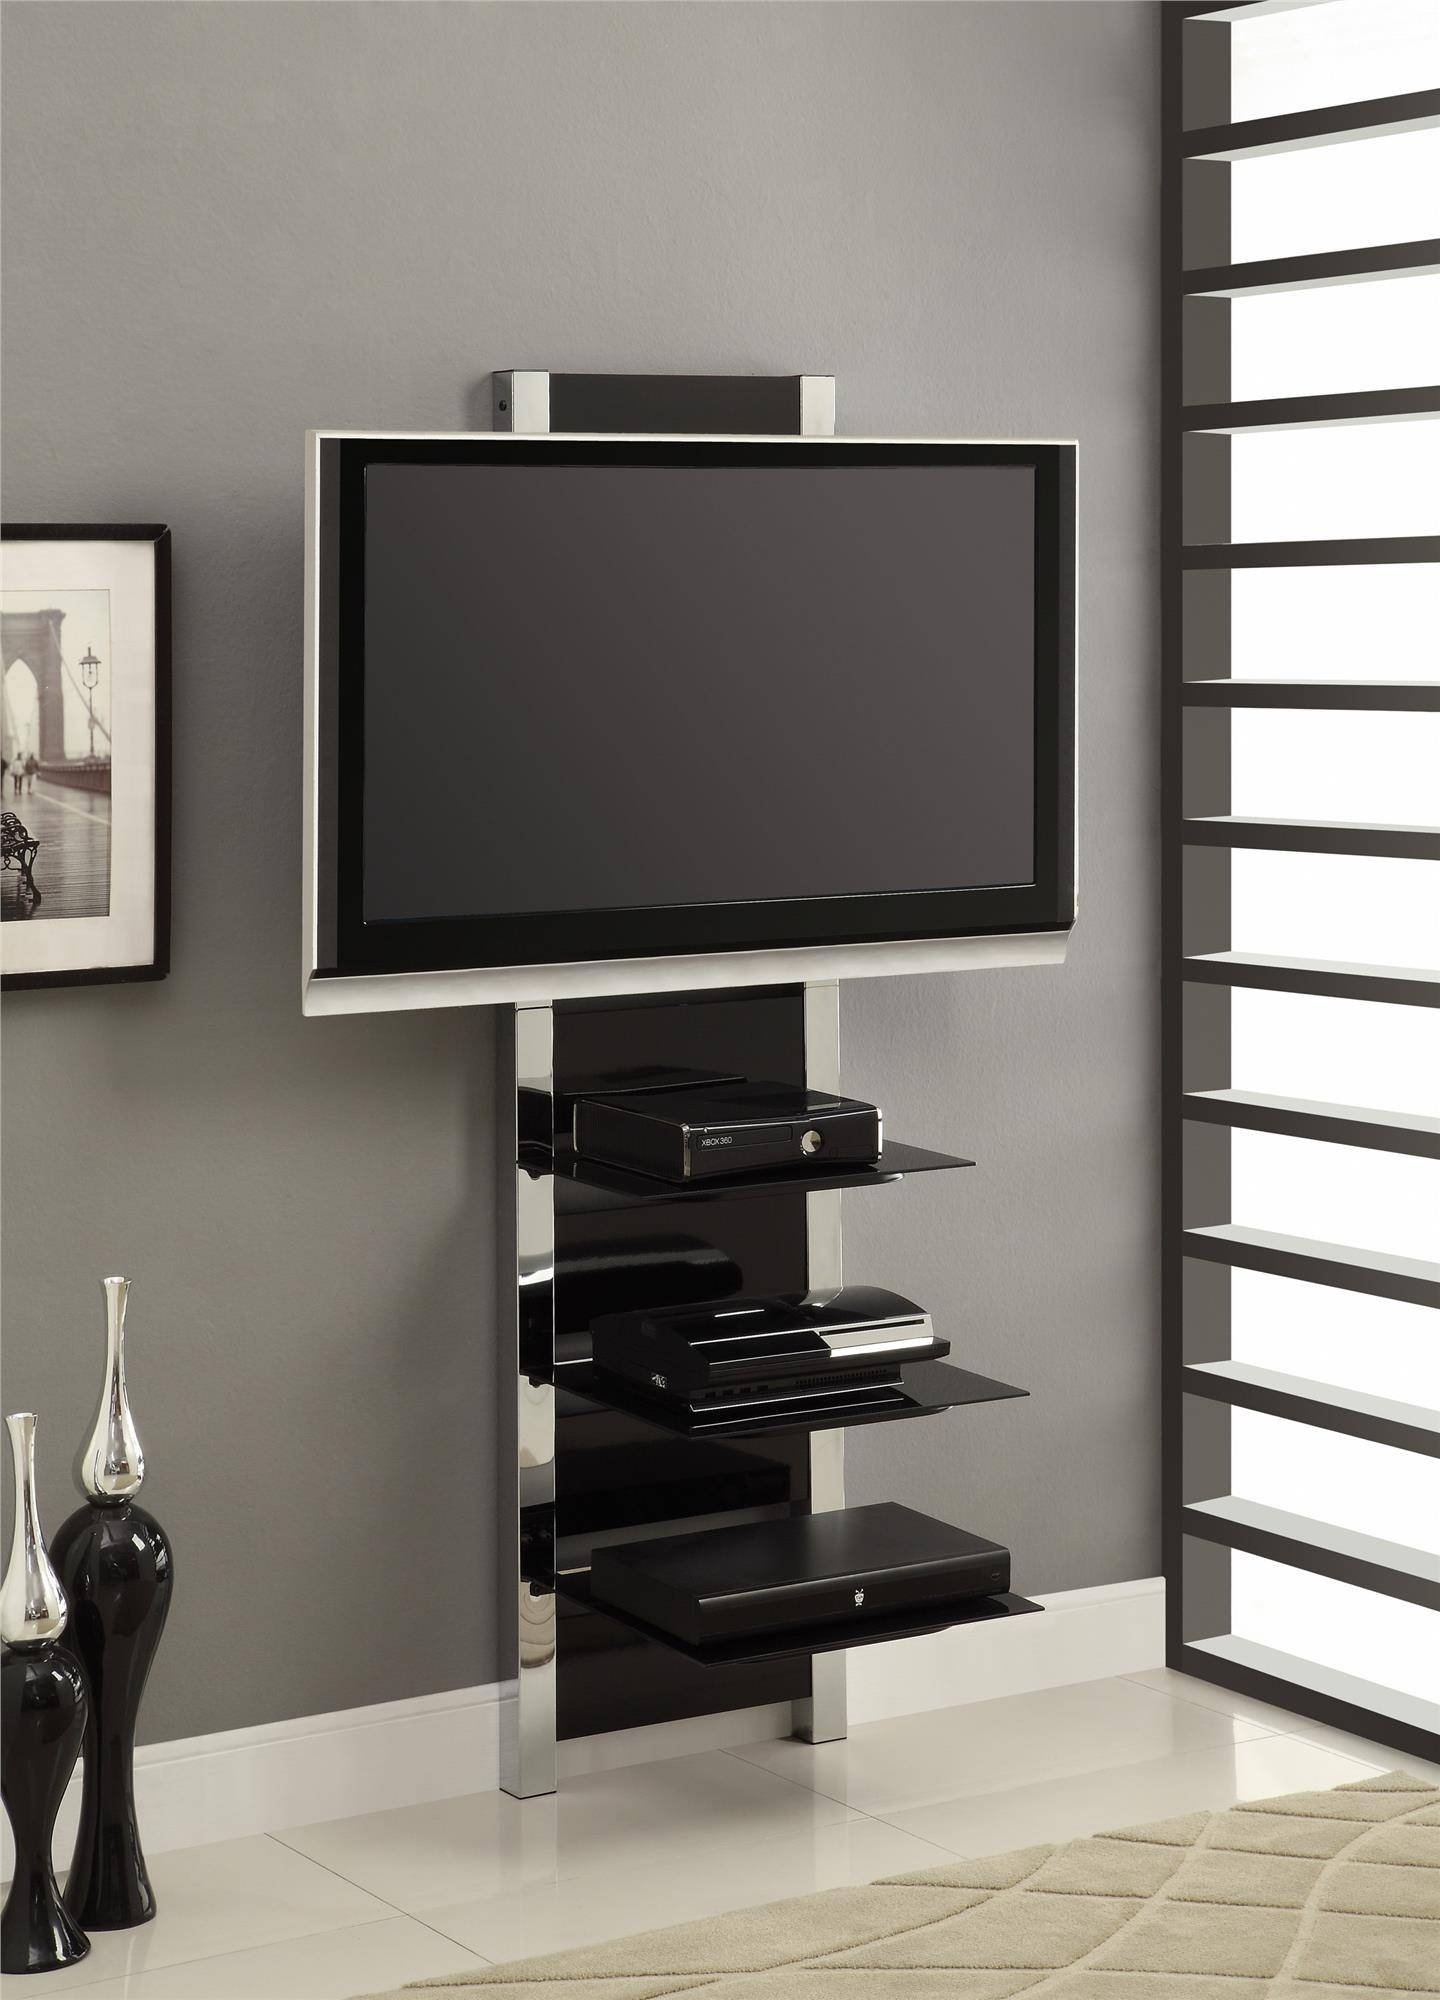 Ameriwood Furniture | Altra Furniture Altramount Modern Tv Stand For Tv Stands For 43 Inch Tv (View 11 of 15)